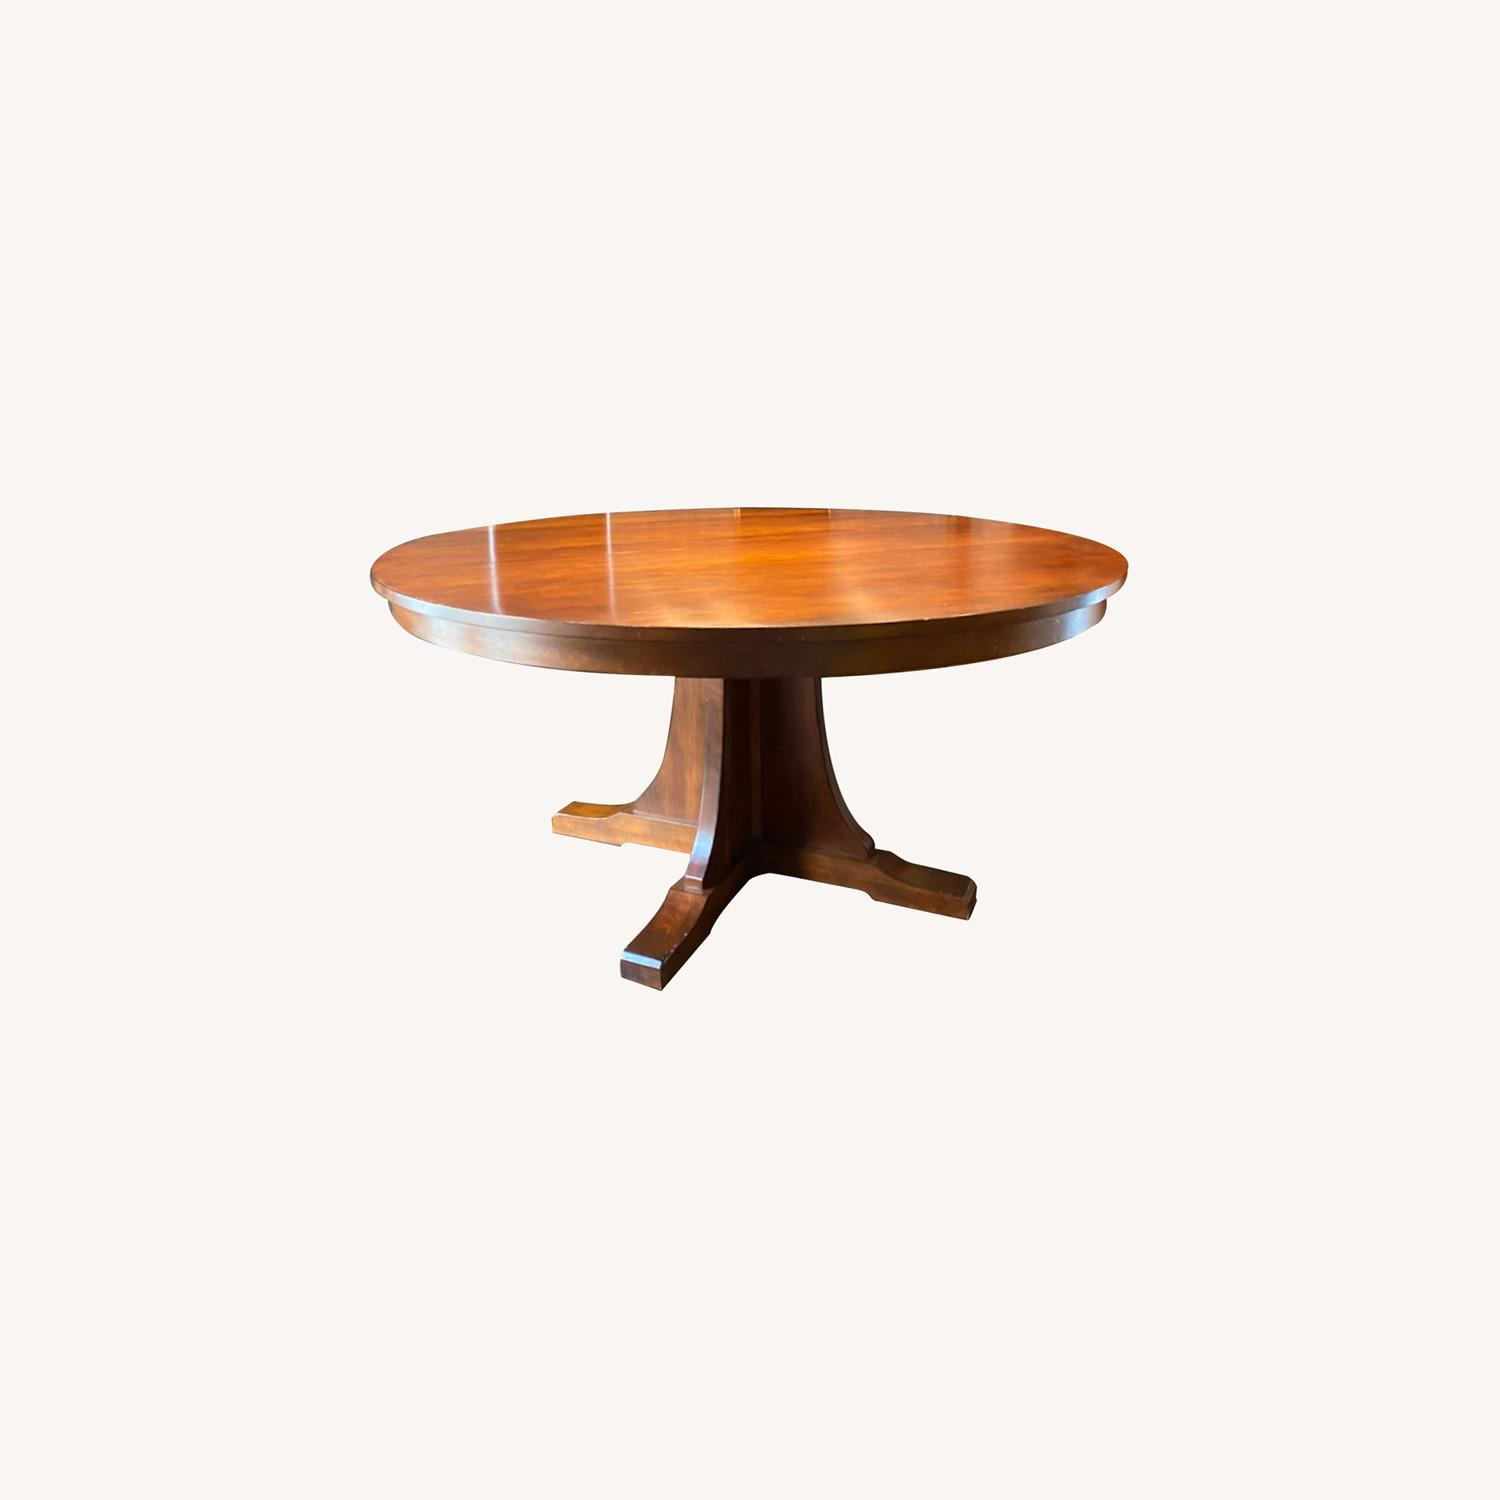 Stickley Round Dining Table with 3 Leaves - image-0